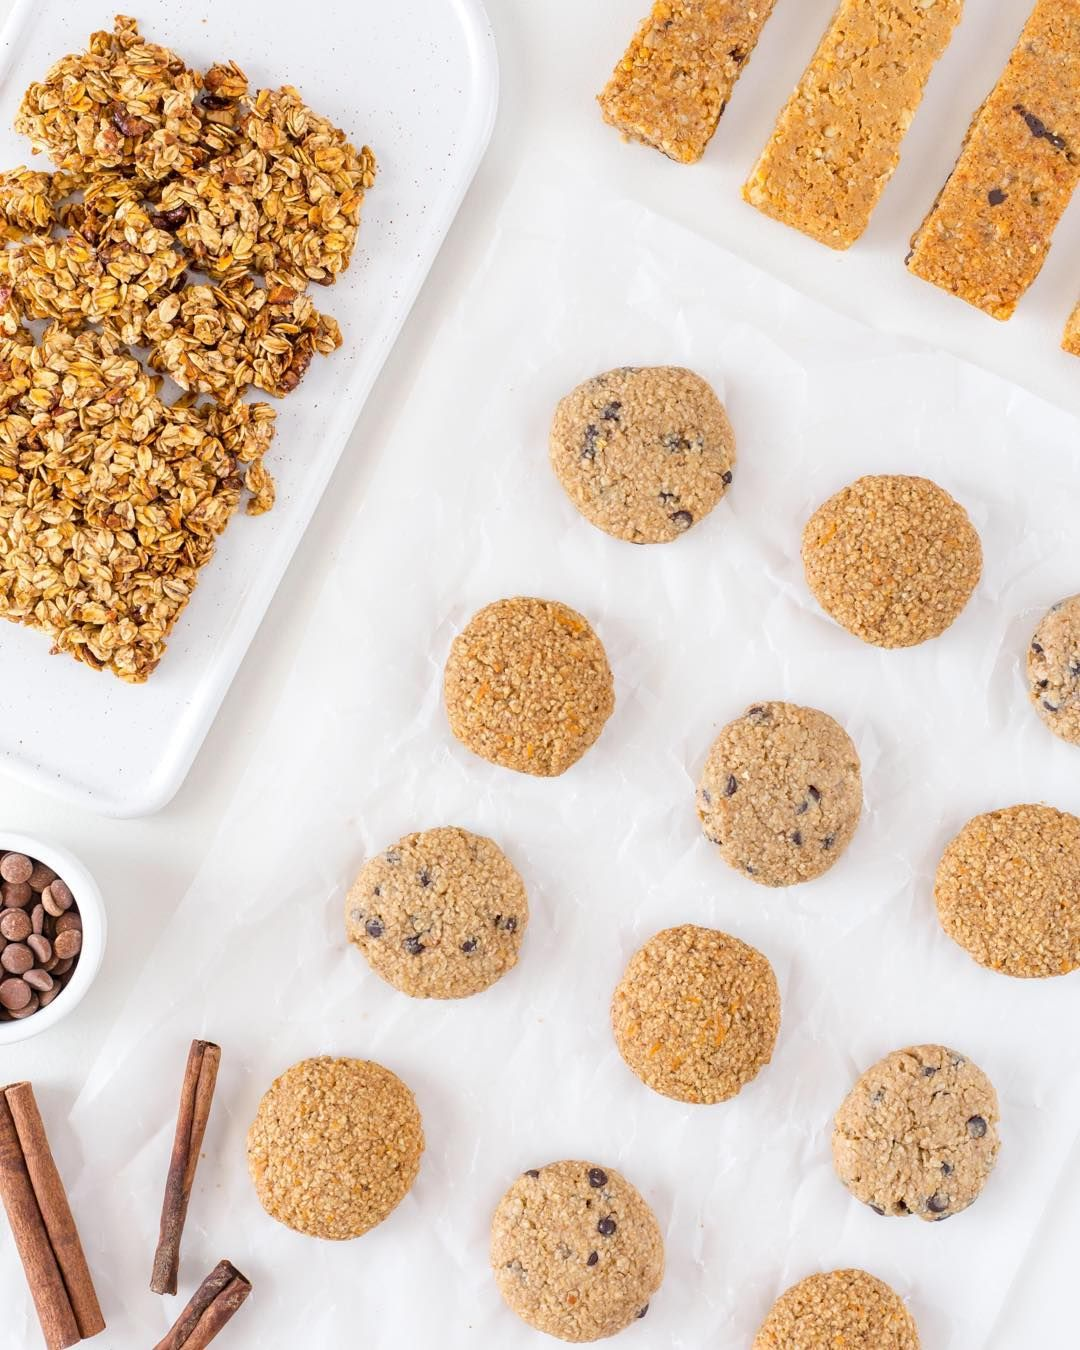 Our oat based CLEAN BAKES are addictively delicious, nutritious and perfect for packing into work or back-to-school lunch boxes.